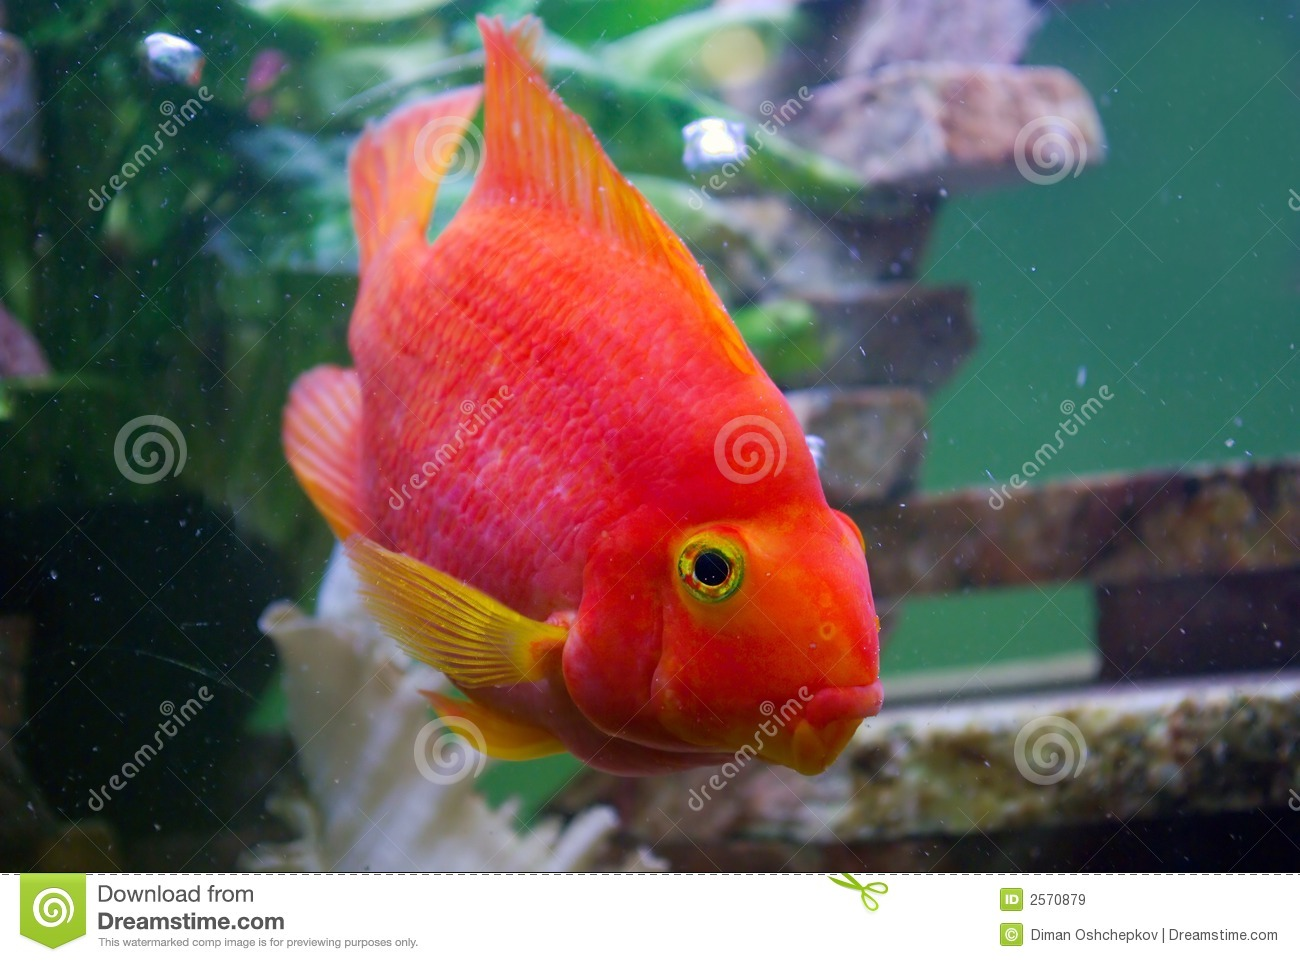 Red Parrot Fish Aquarium Stock Images - 394 Photos